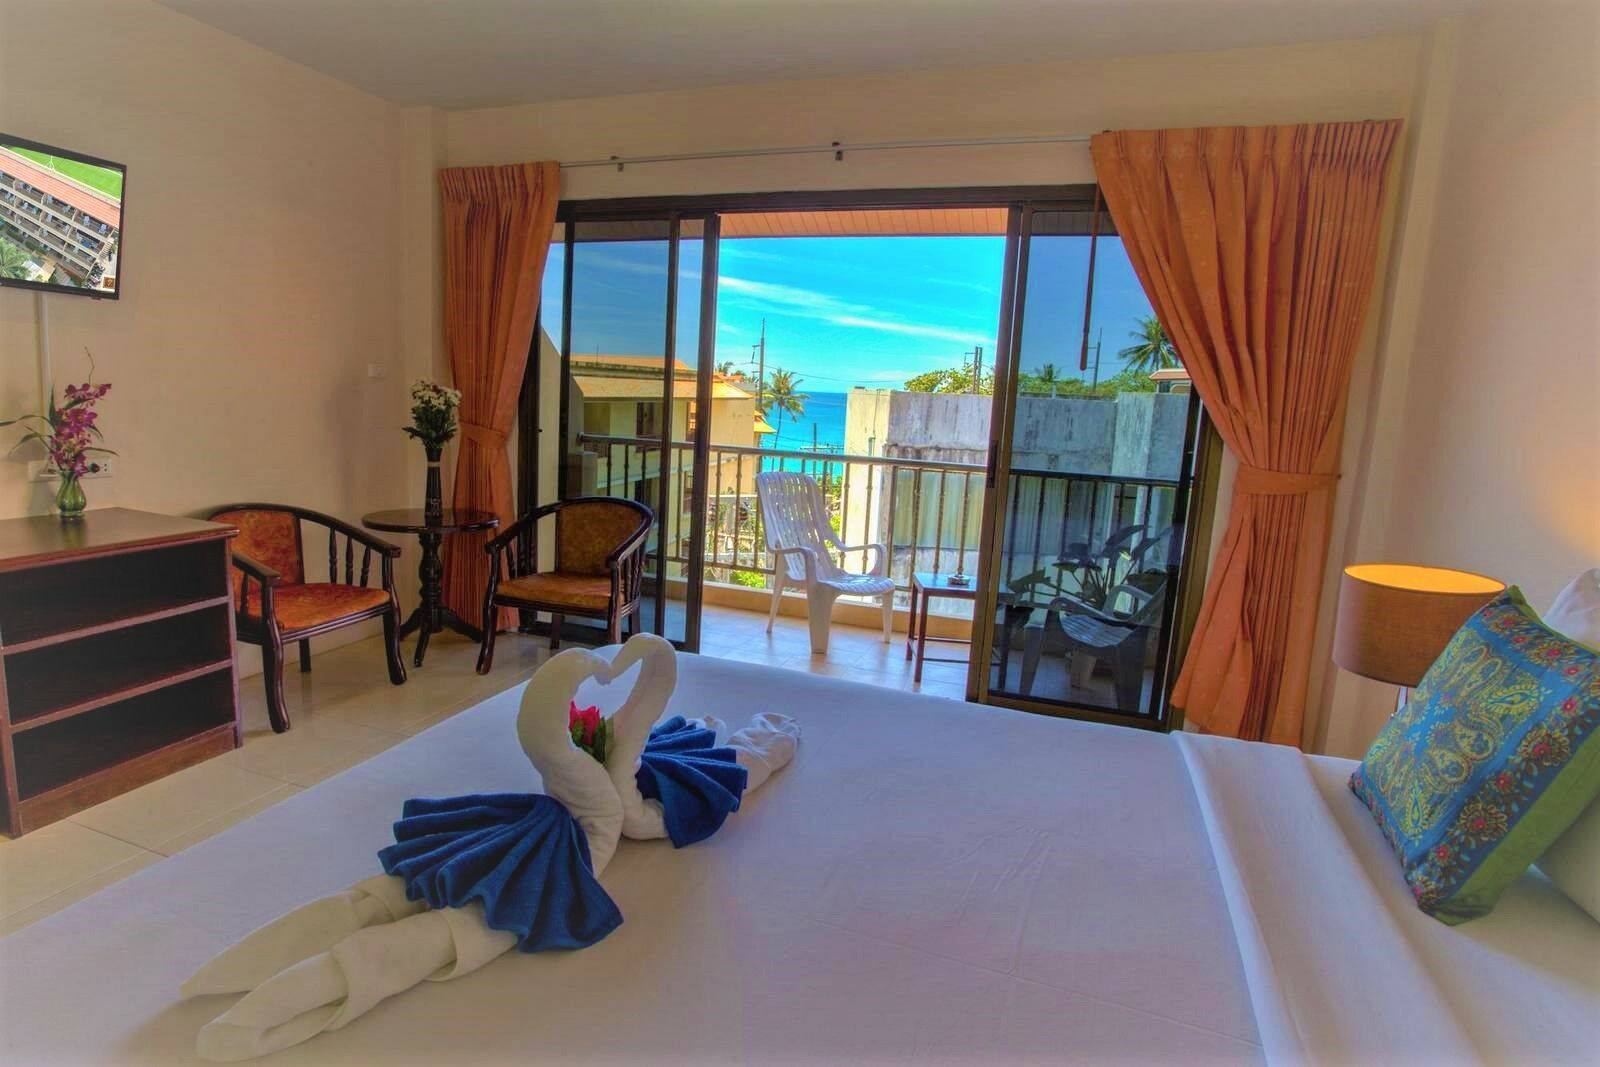 Seven Seas Hotel. One of the best budget hotels in Phuket